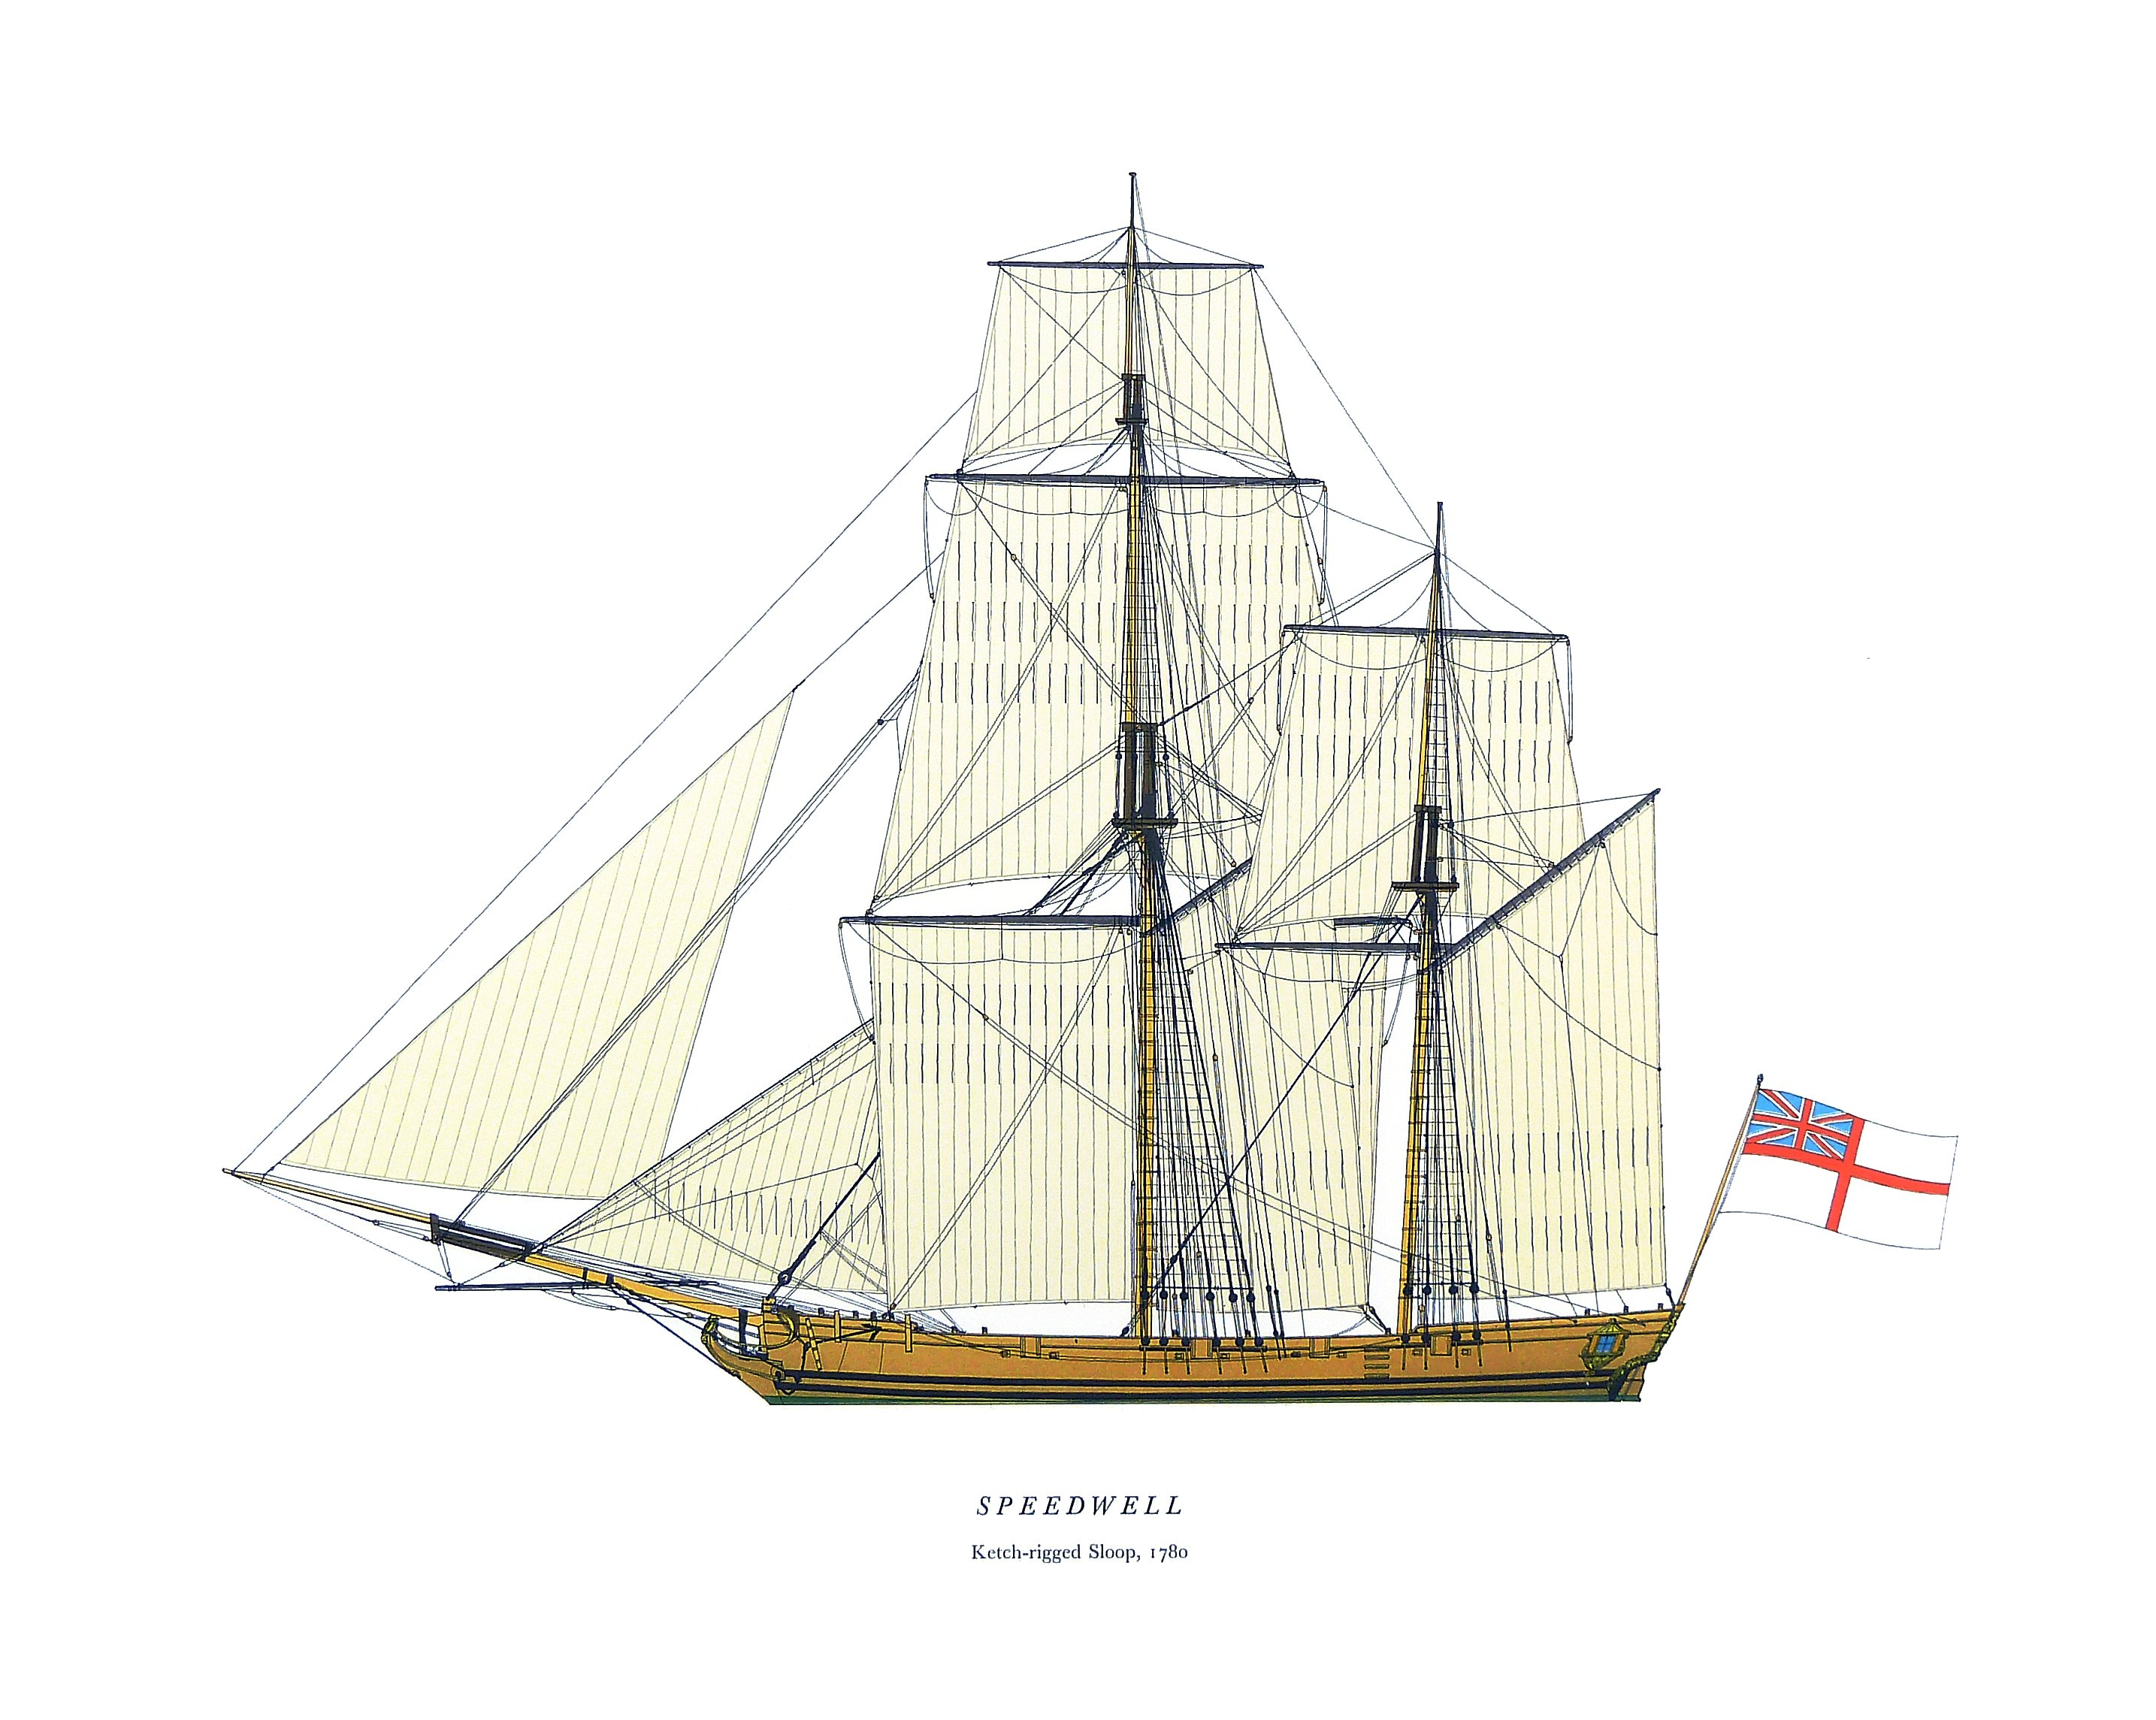 HMS Speedwell, Ketch-rigged Sloop, 1780